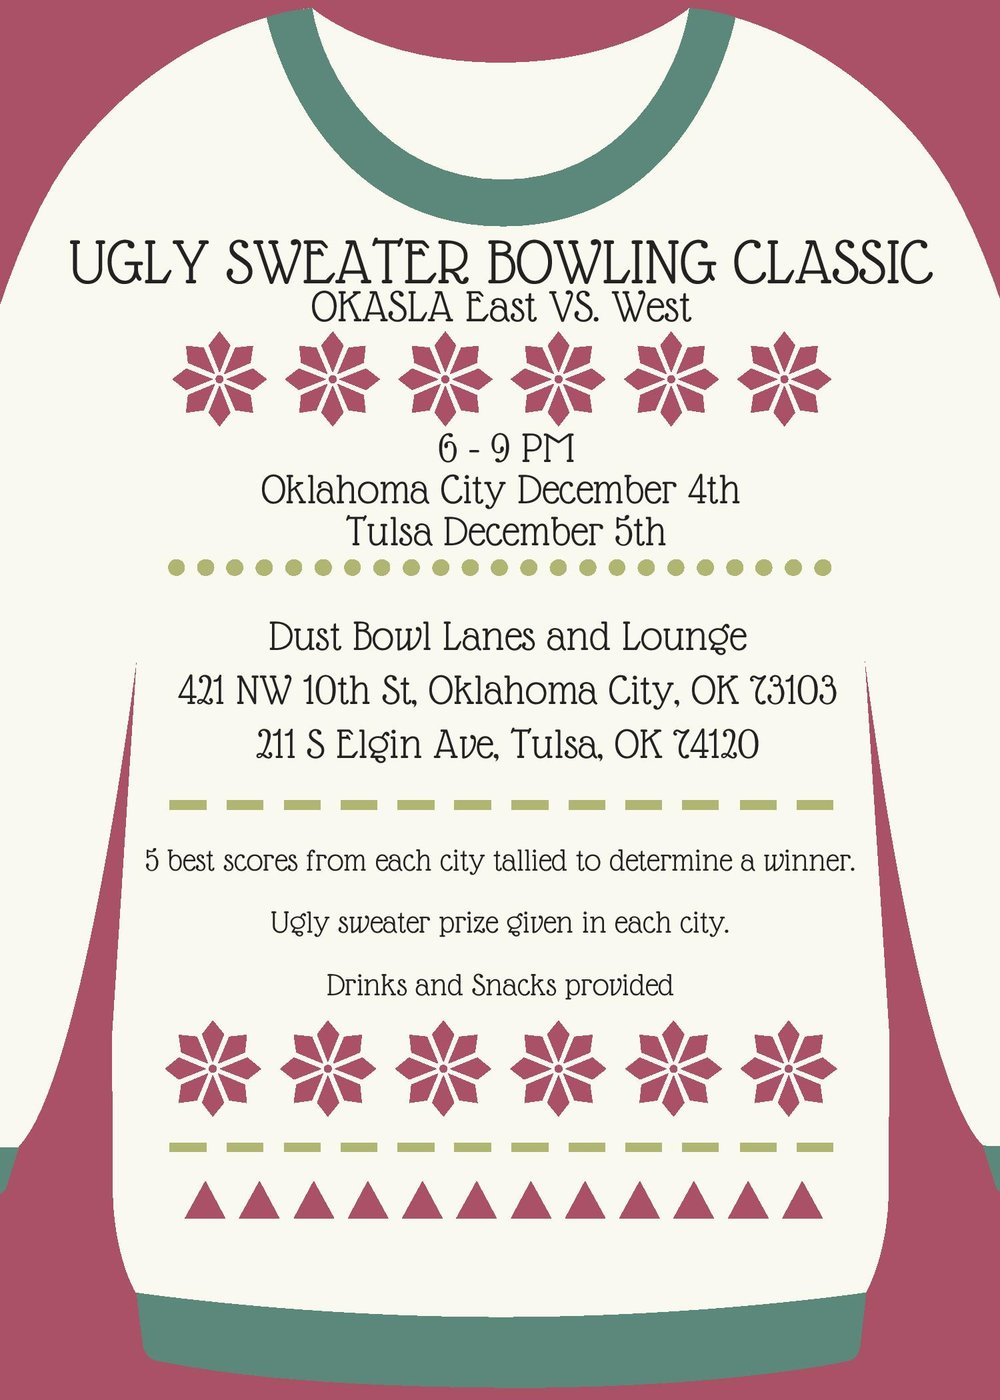 UGLY%20SWEATER%20BOWLING%20CLASSIC-page-001.jpg